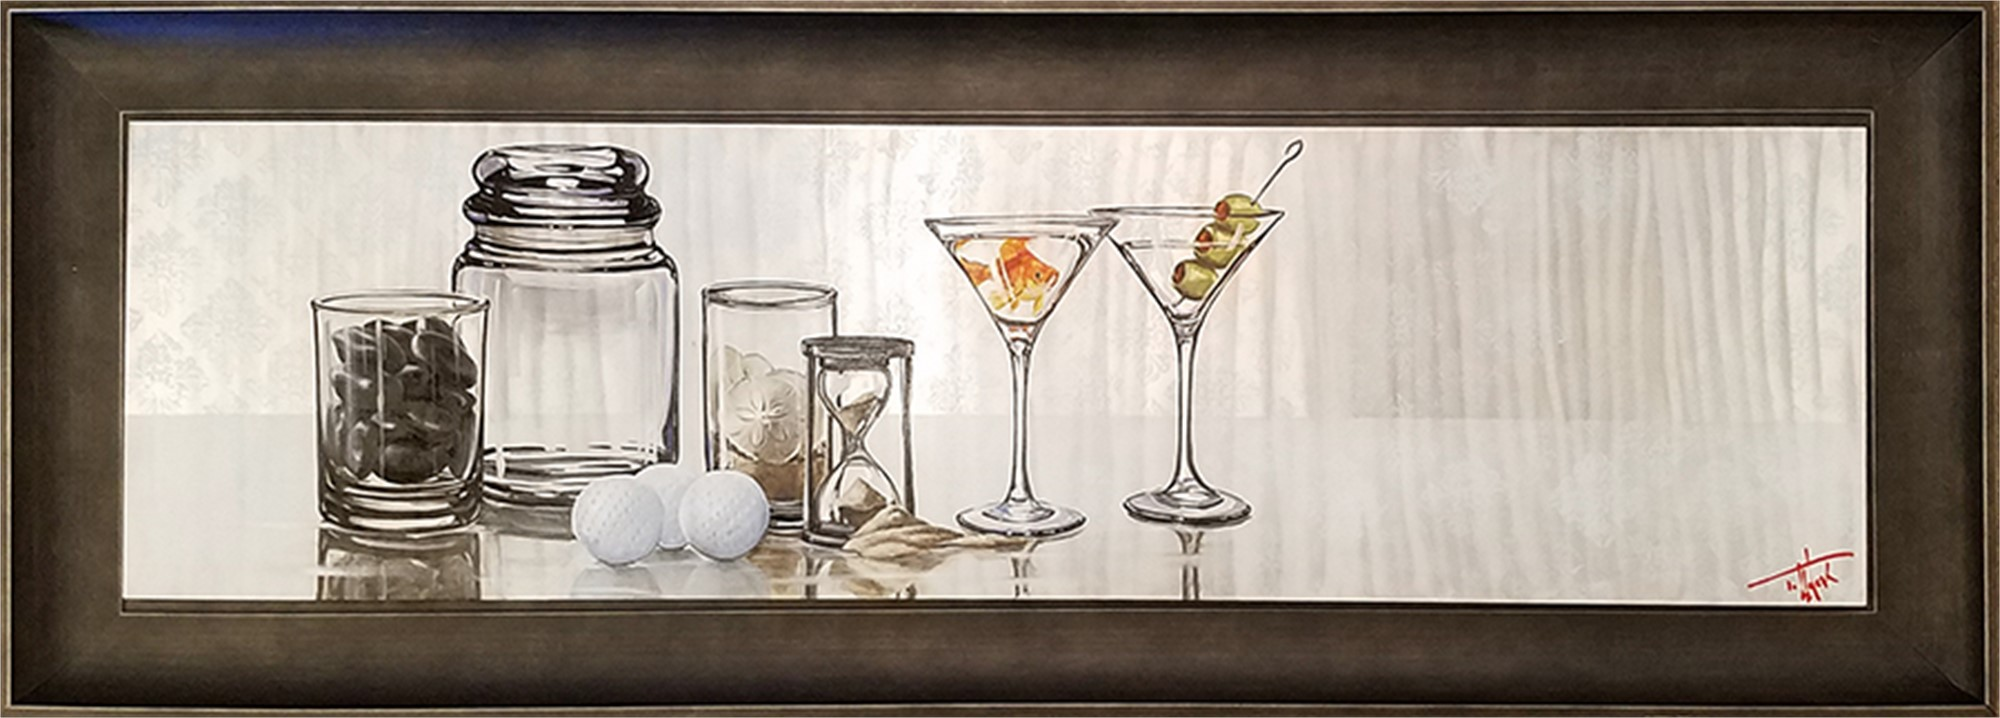 Drinks with Friends - 48x13 Oil on Aluminum by Pete Tillack